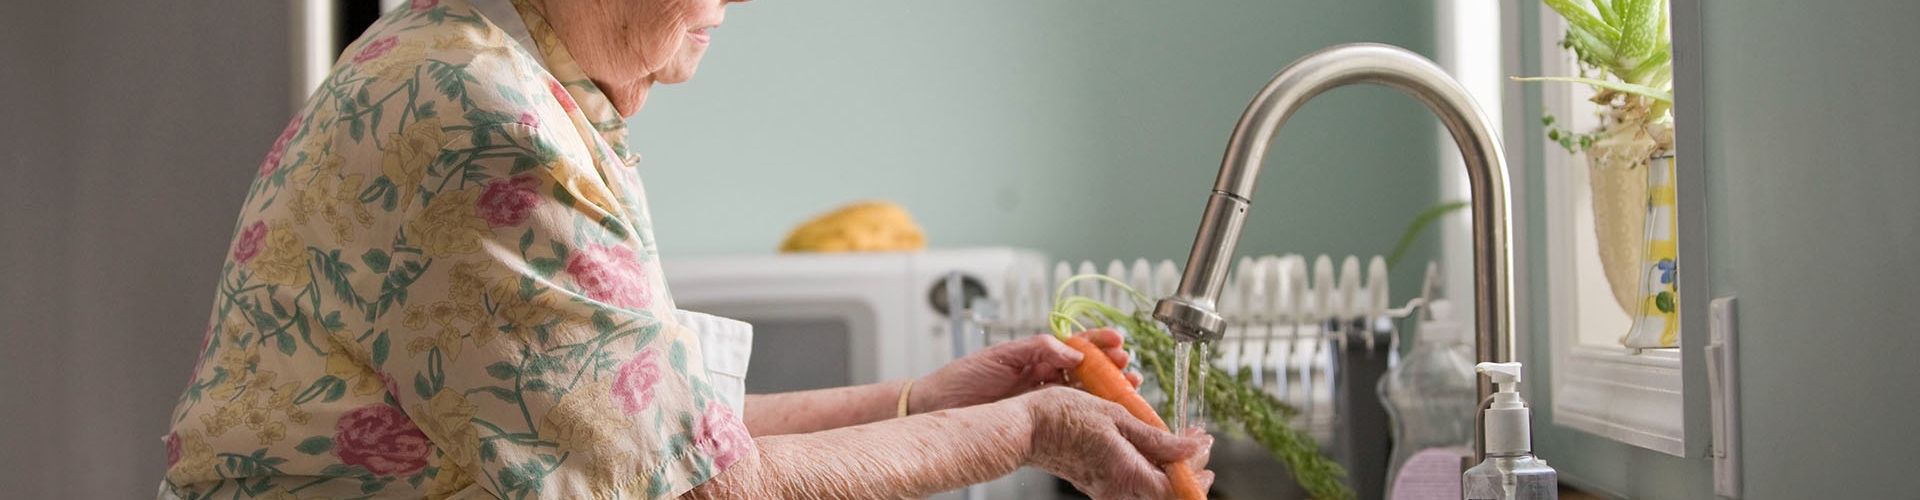 moving in with an elderly parent - advice